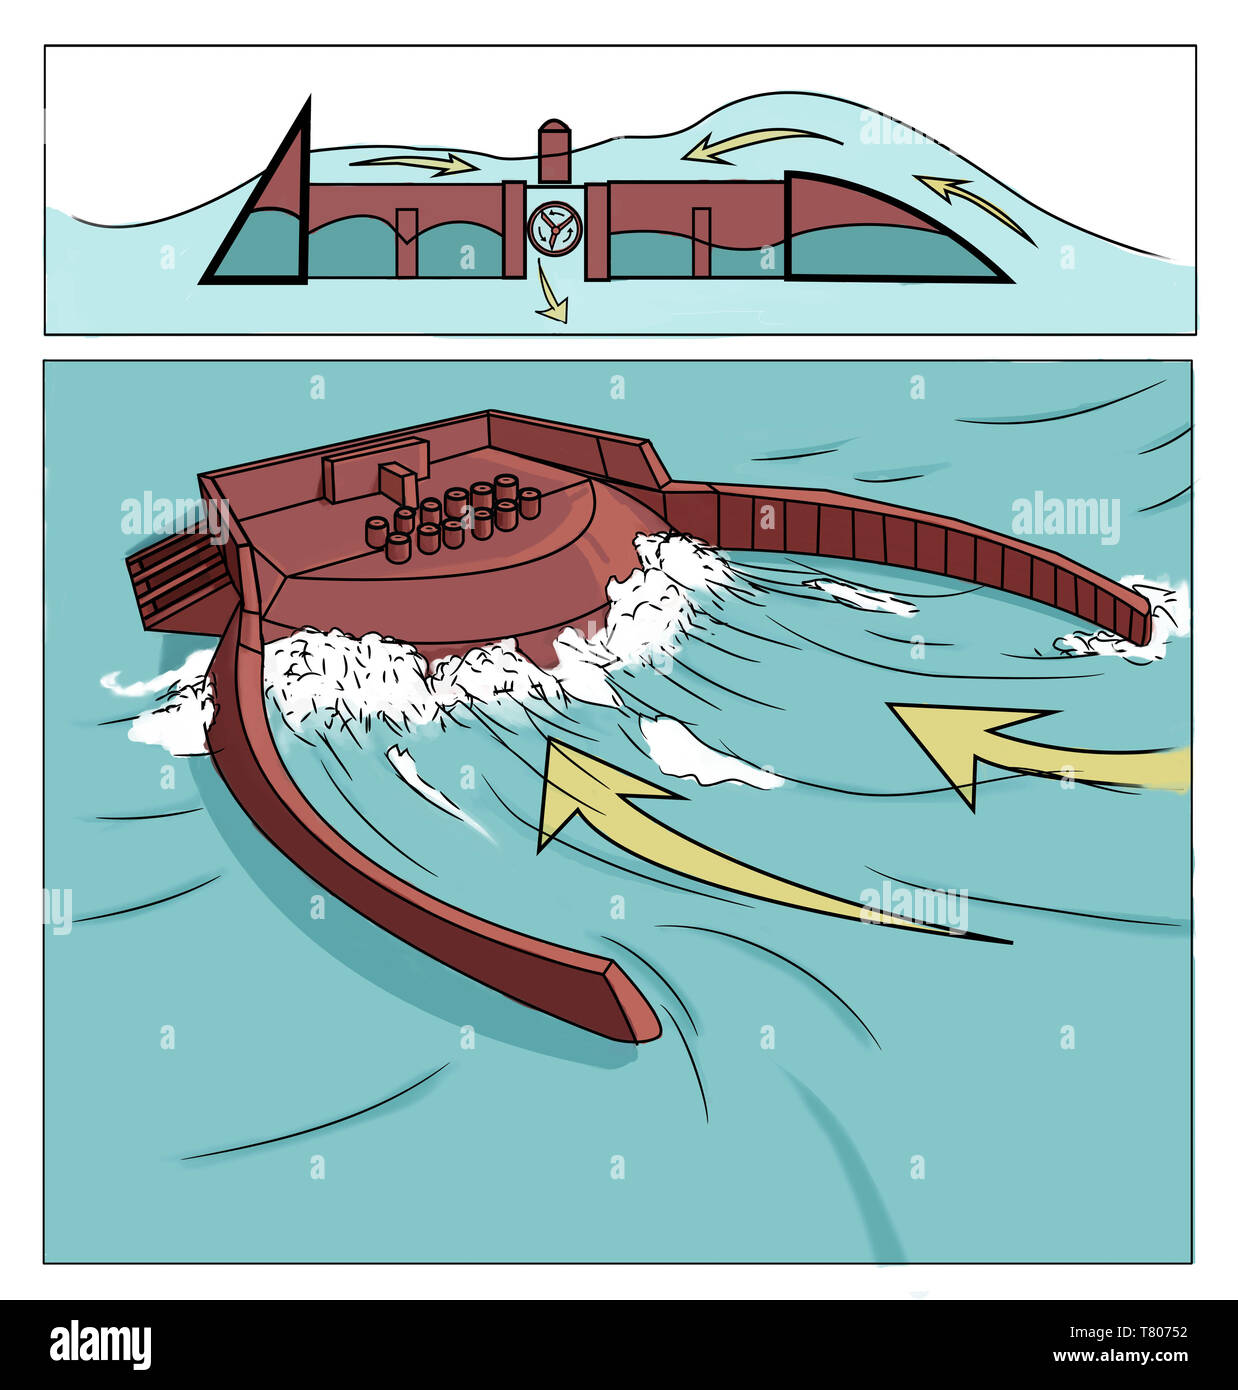 Wave Energy Diagram Stock Photos & Wave Energy Diagram Stock Images on